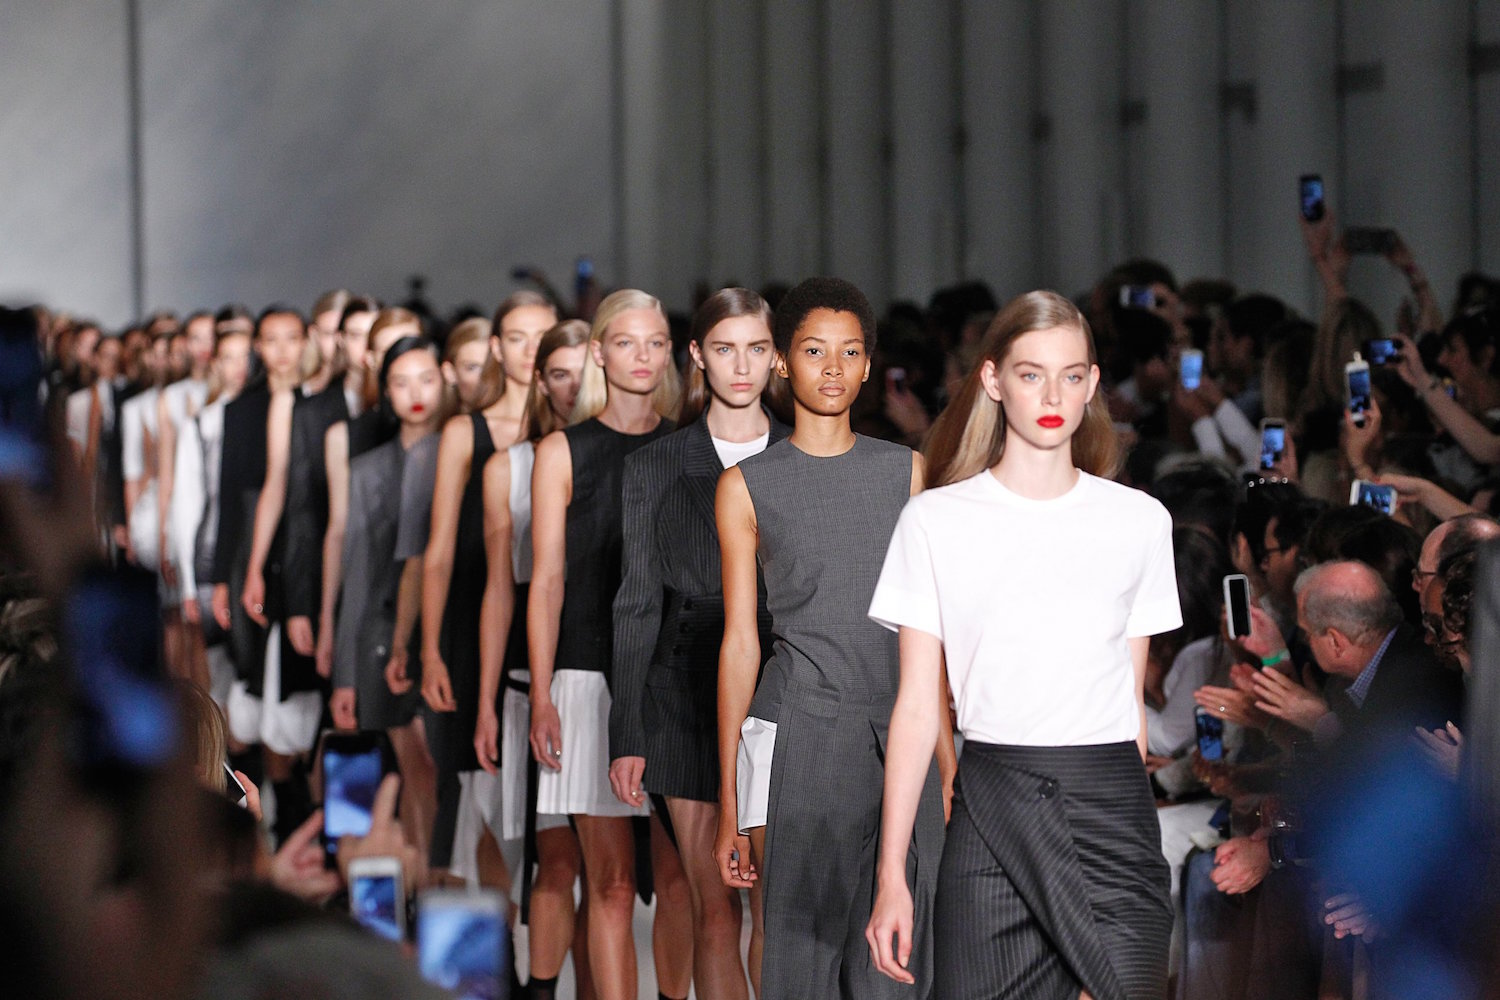 How Tech Killed Fashion Week This Tailored Life